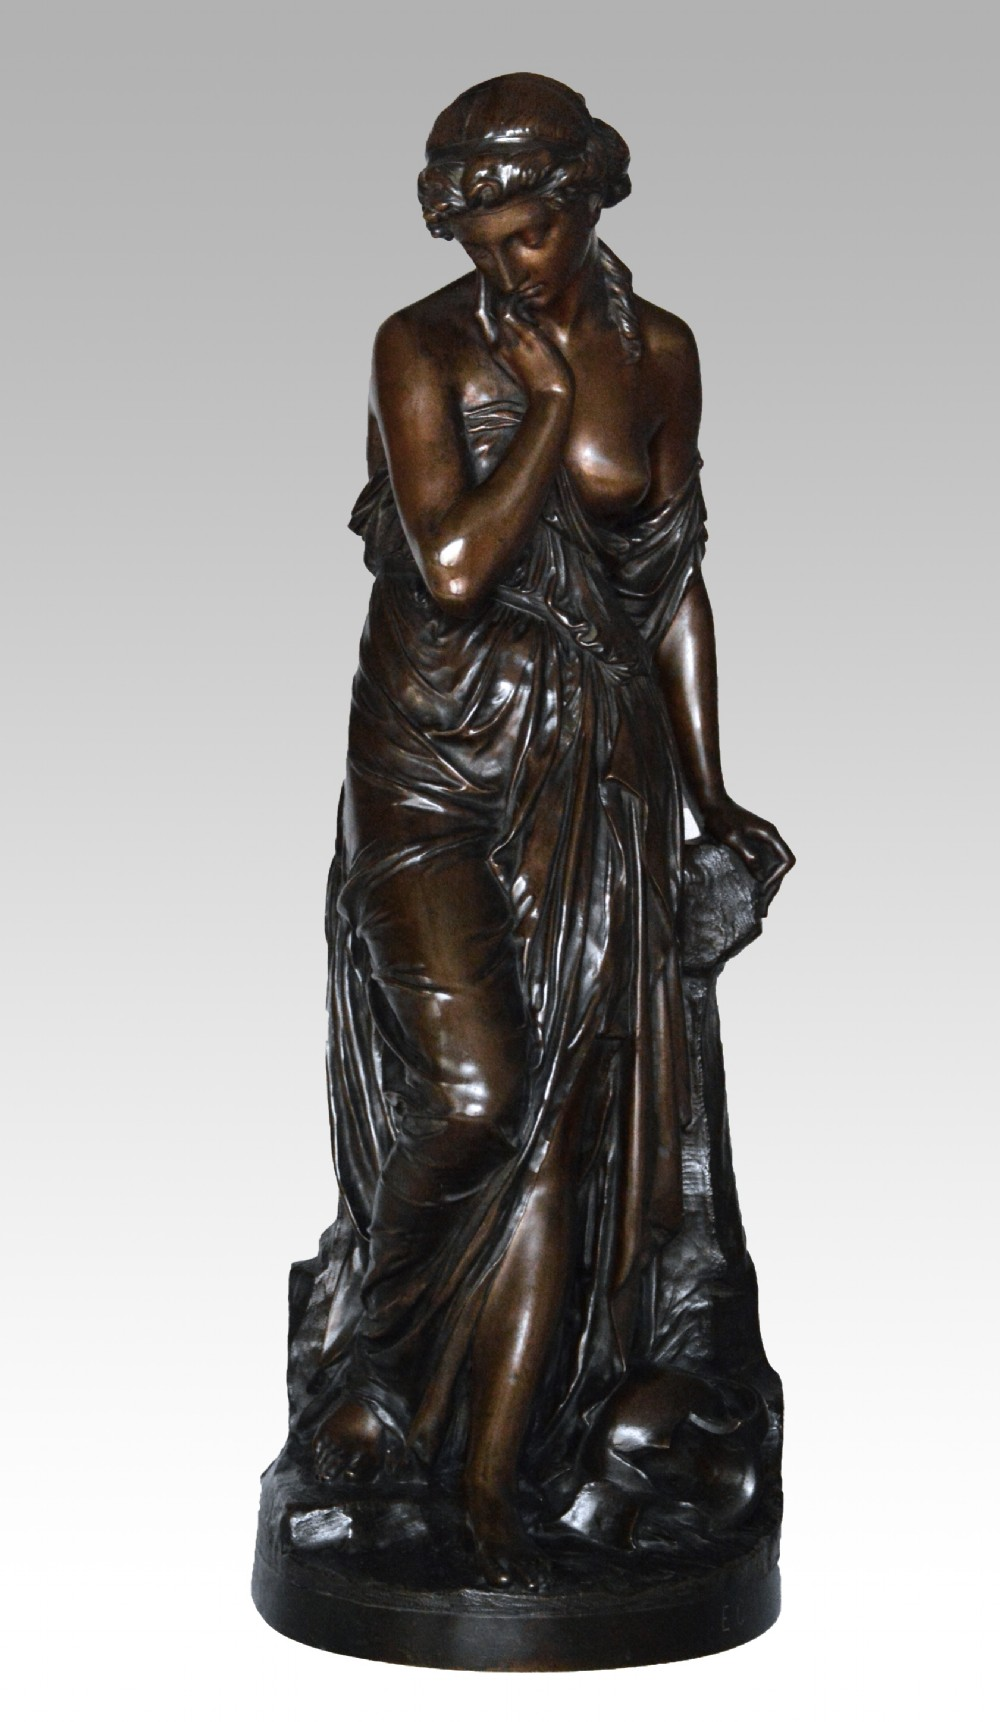 19th century bronze sculpture of a woman with a broken pot by emilefrancois carlier